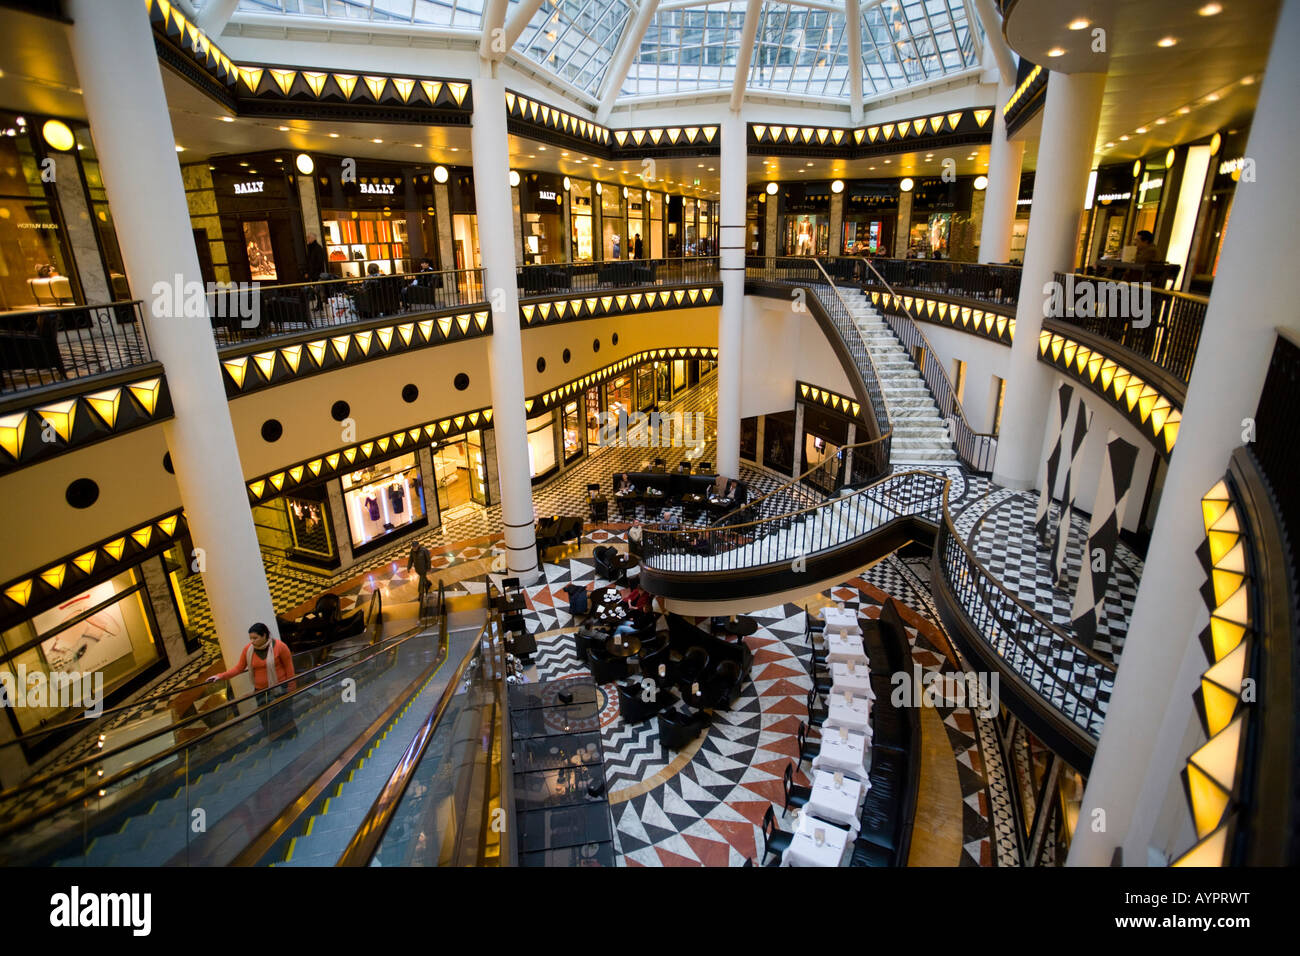 noble shopping center quartier 206 friedrichstrasse mitte berlin stock photo 17161955 alamy. Black Bedroom Furniture Sets. Home Design Ideas